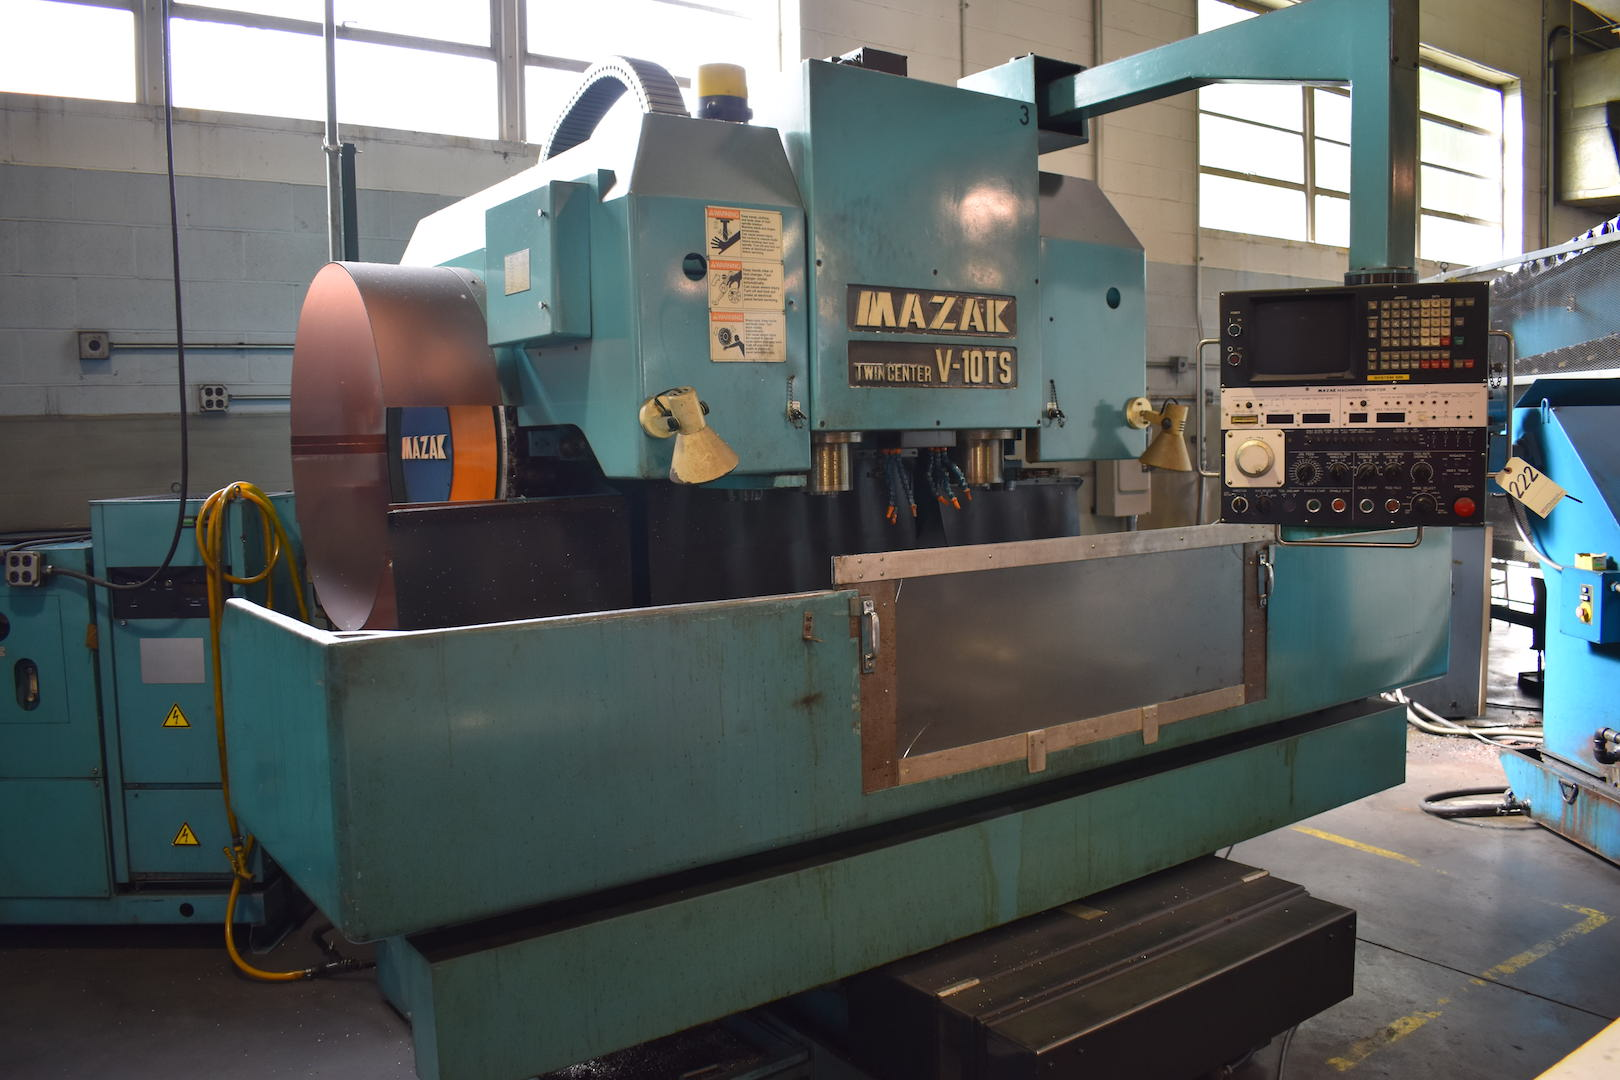 Lot 222 - Mazak Model Twin Center V-10TS Twin-Spindle CNC Vertical Machining Center, S/N 60972 (1985), Fanuc